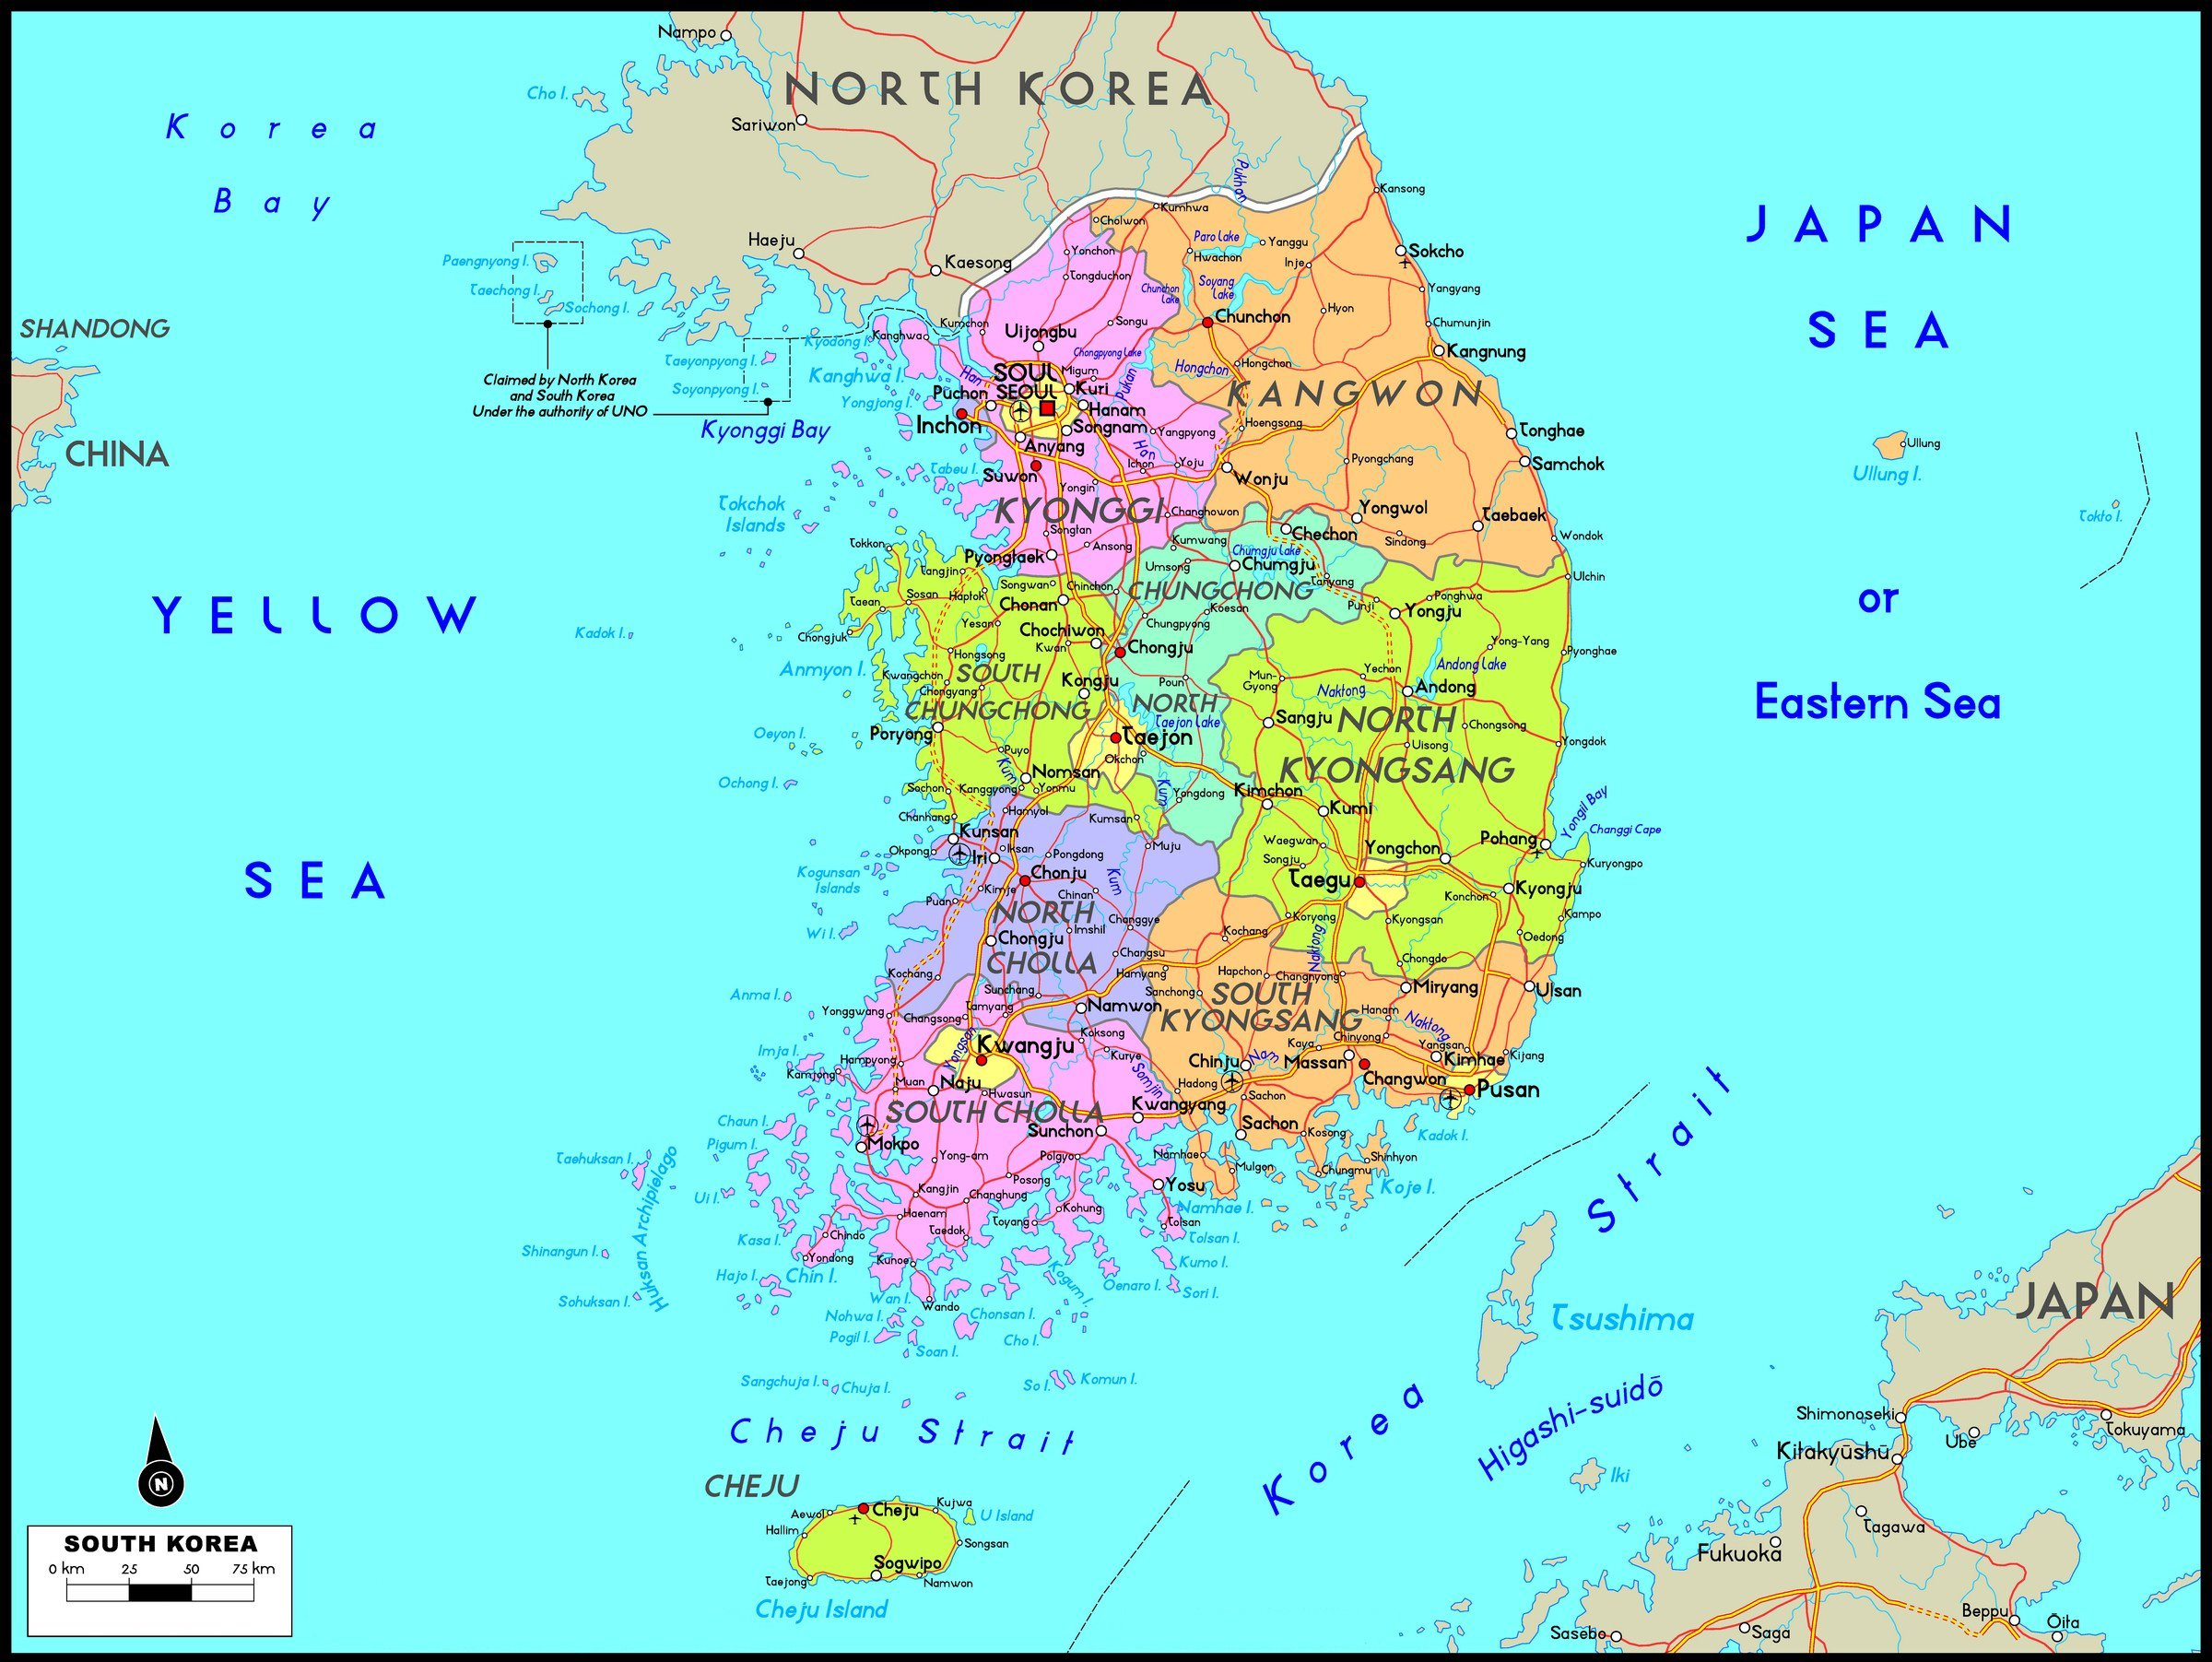 South Korea Maps | Printable Maps of South Korea for Download